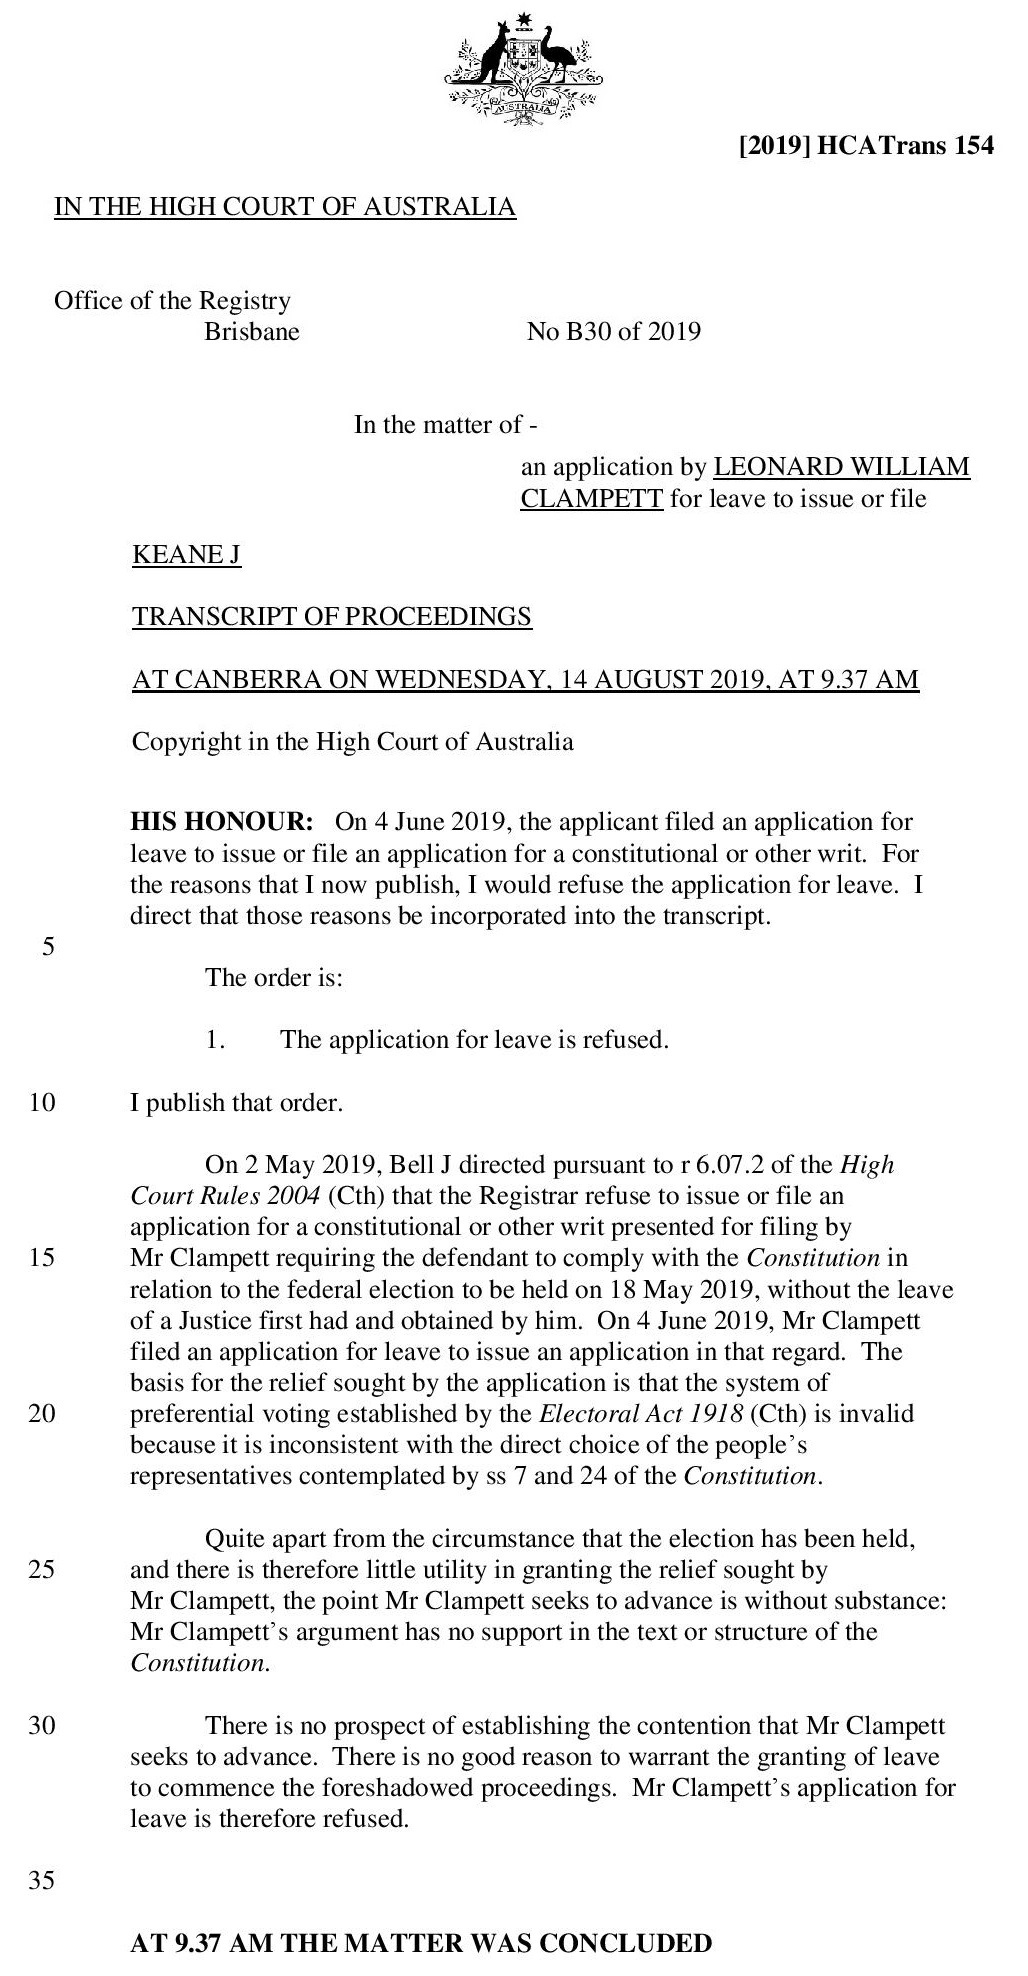 Clampett, In the matter of an application for leave to issue or file [2019] HCATrans 154-page-002